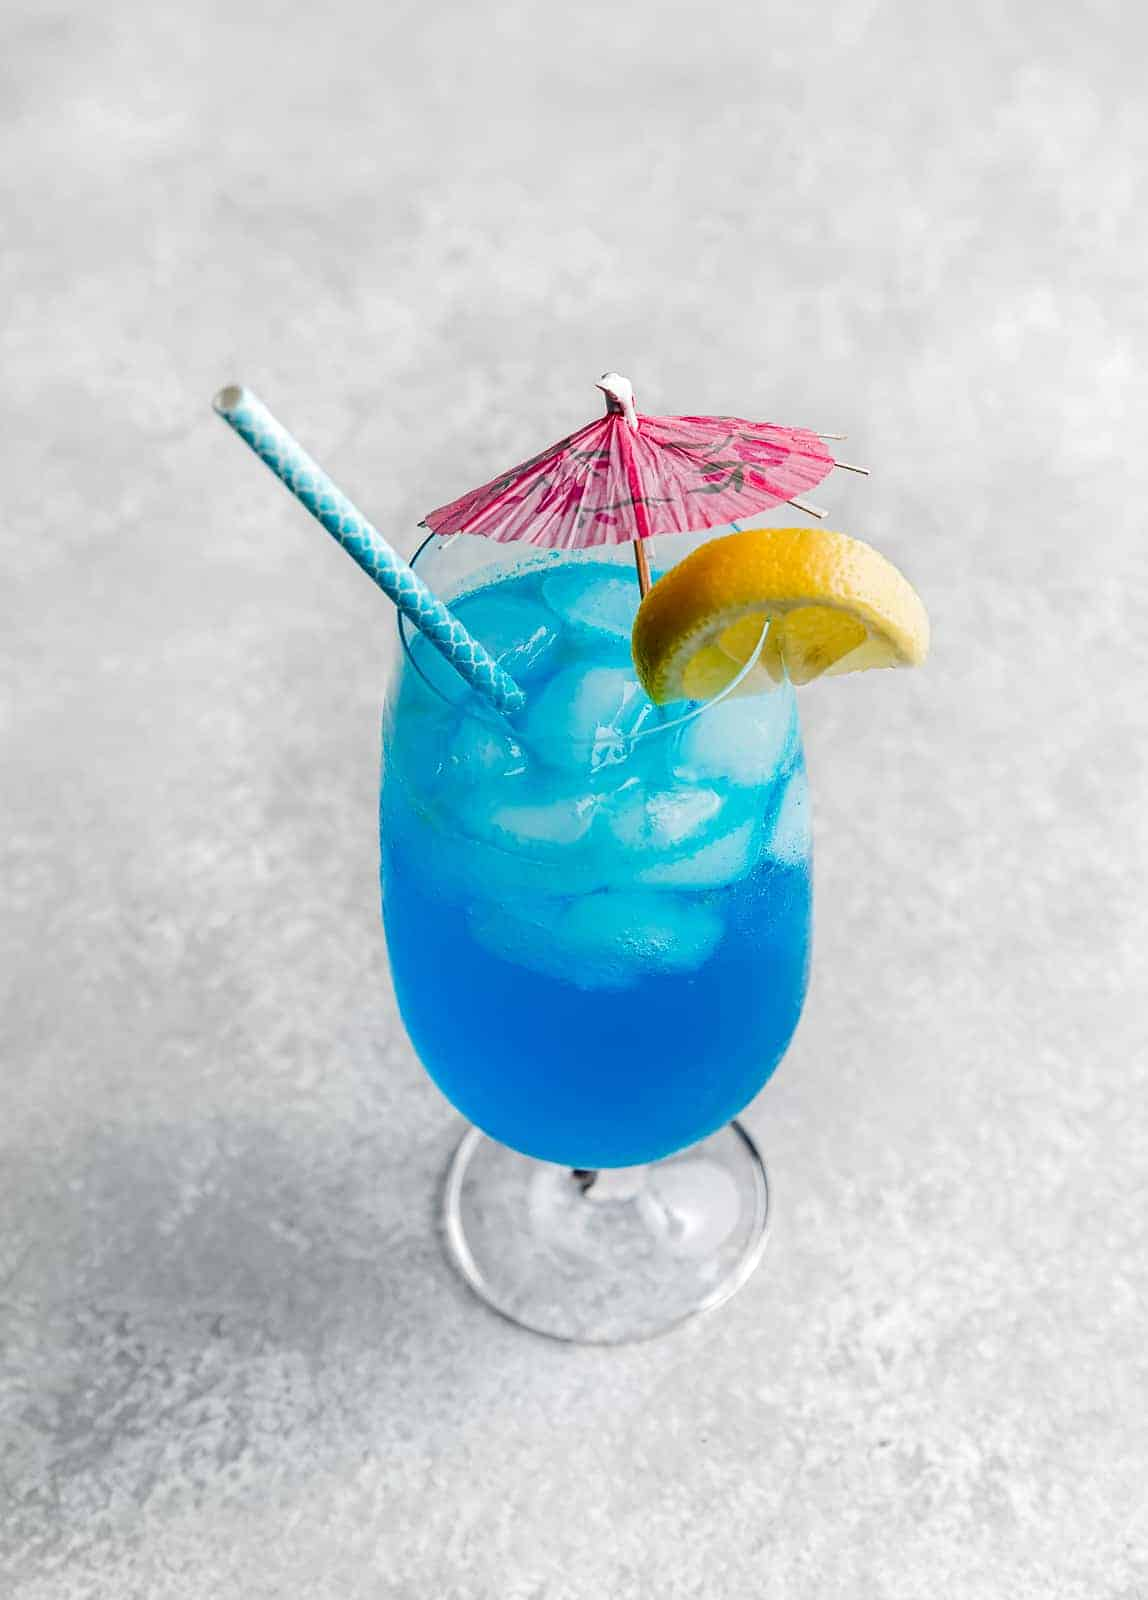 A blue lagoon mocktail drink on a gray background with a pink umbrella and lemon wedge on the edge of the cup.